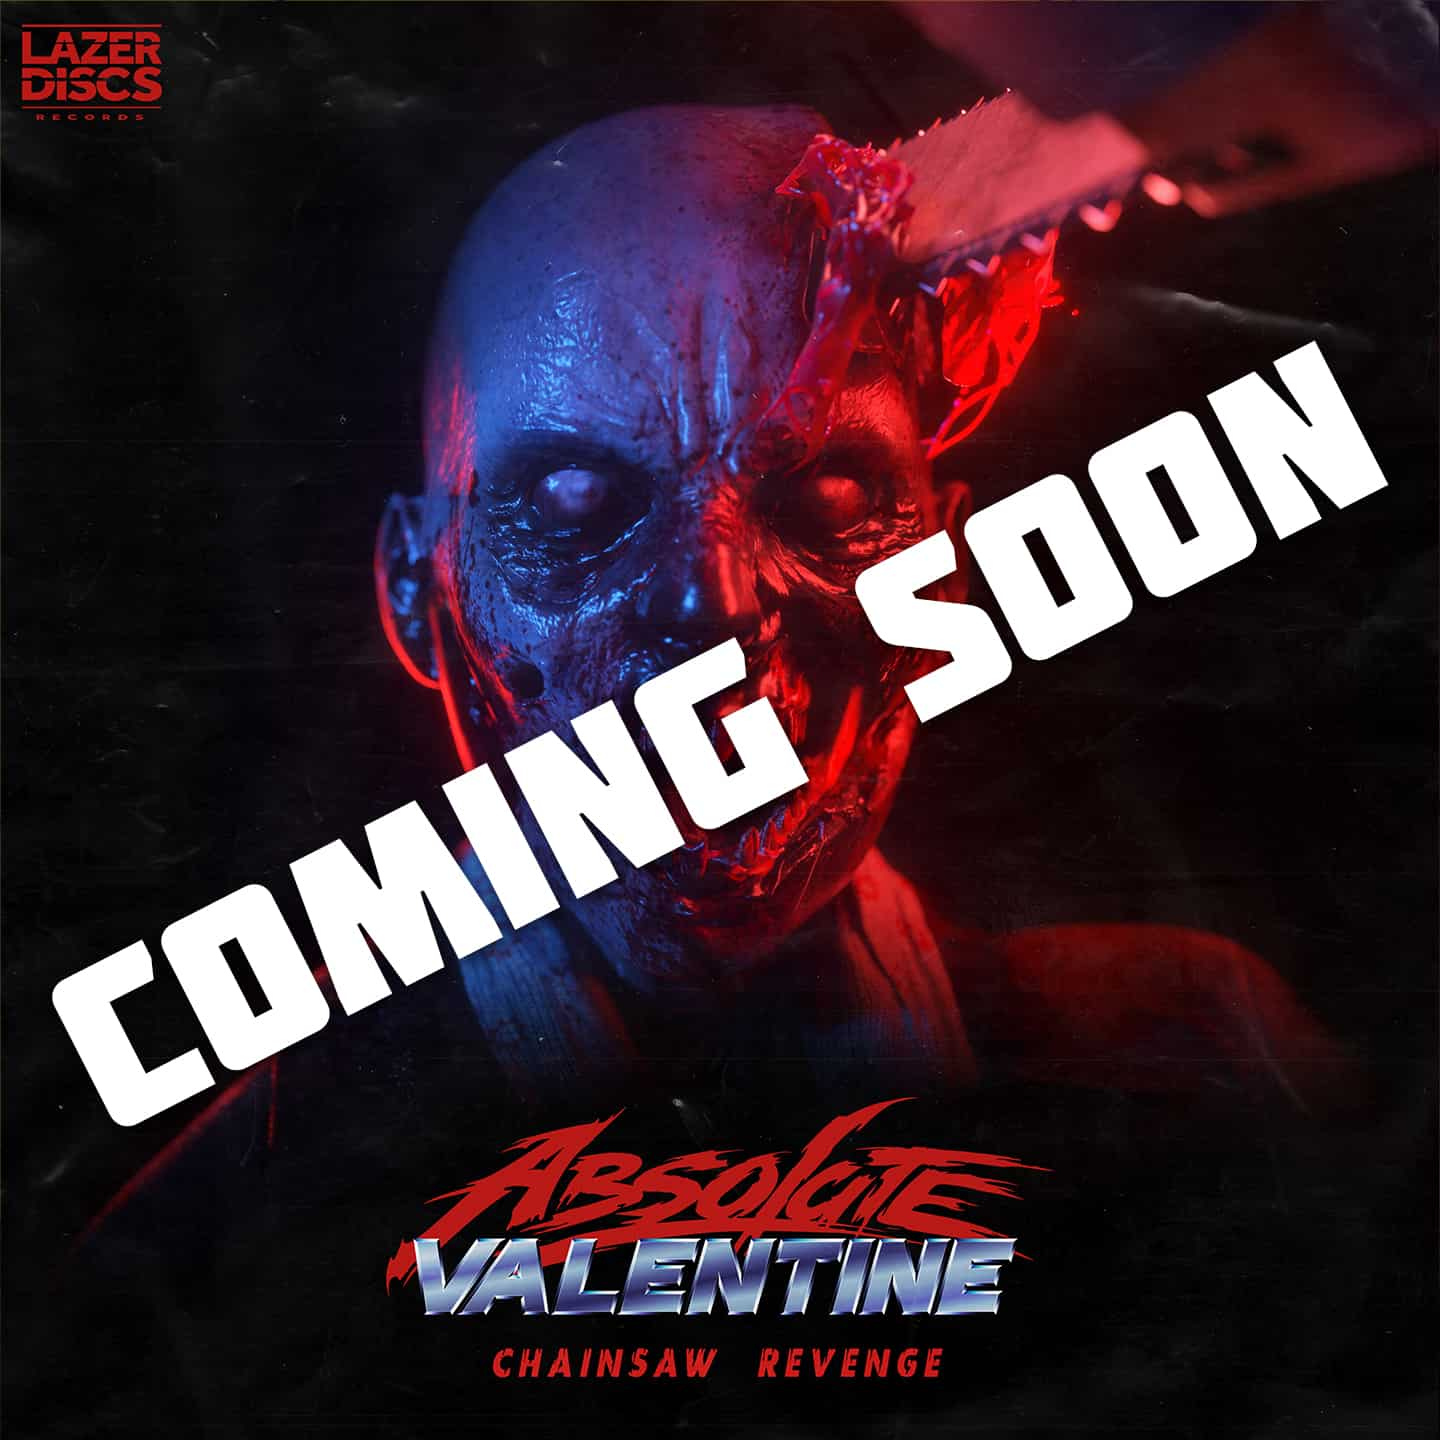 Absolute Valentine - Chainsaw revenge  Synthwave Single